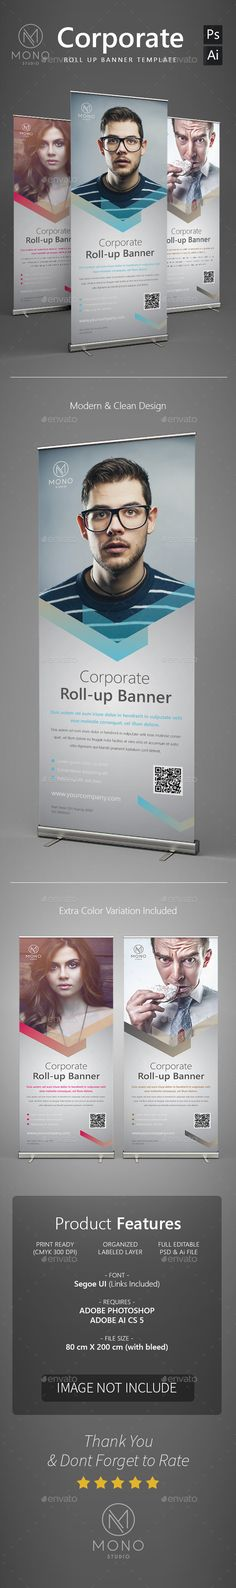 Corporate Roll Up Banner Template PSD, Vector AI #design Download: http://graphicriver.net/item/corporate-roll-up-banner-2/14333777?ref=ksioks